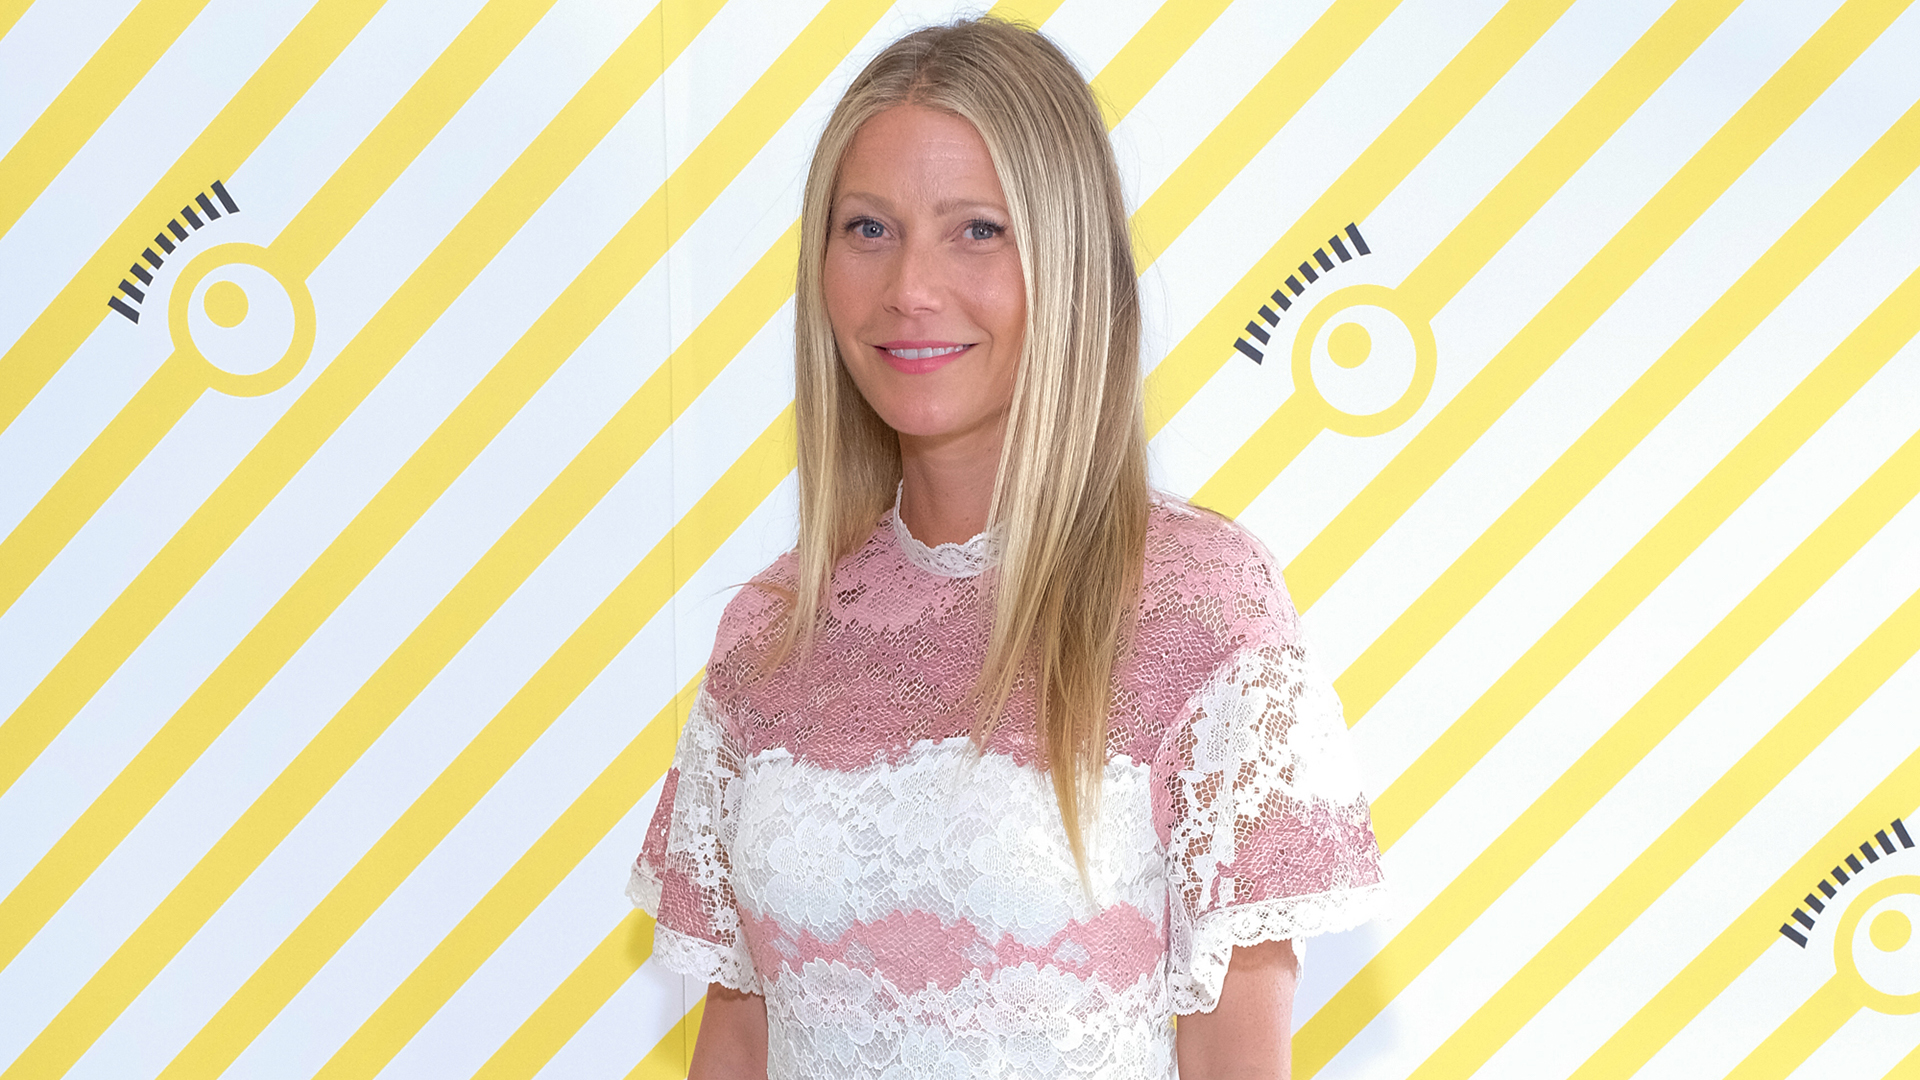 Gwyneth Paltrow Slammed for Goop Article Promoting Severe Weight Loss